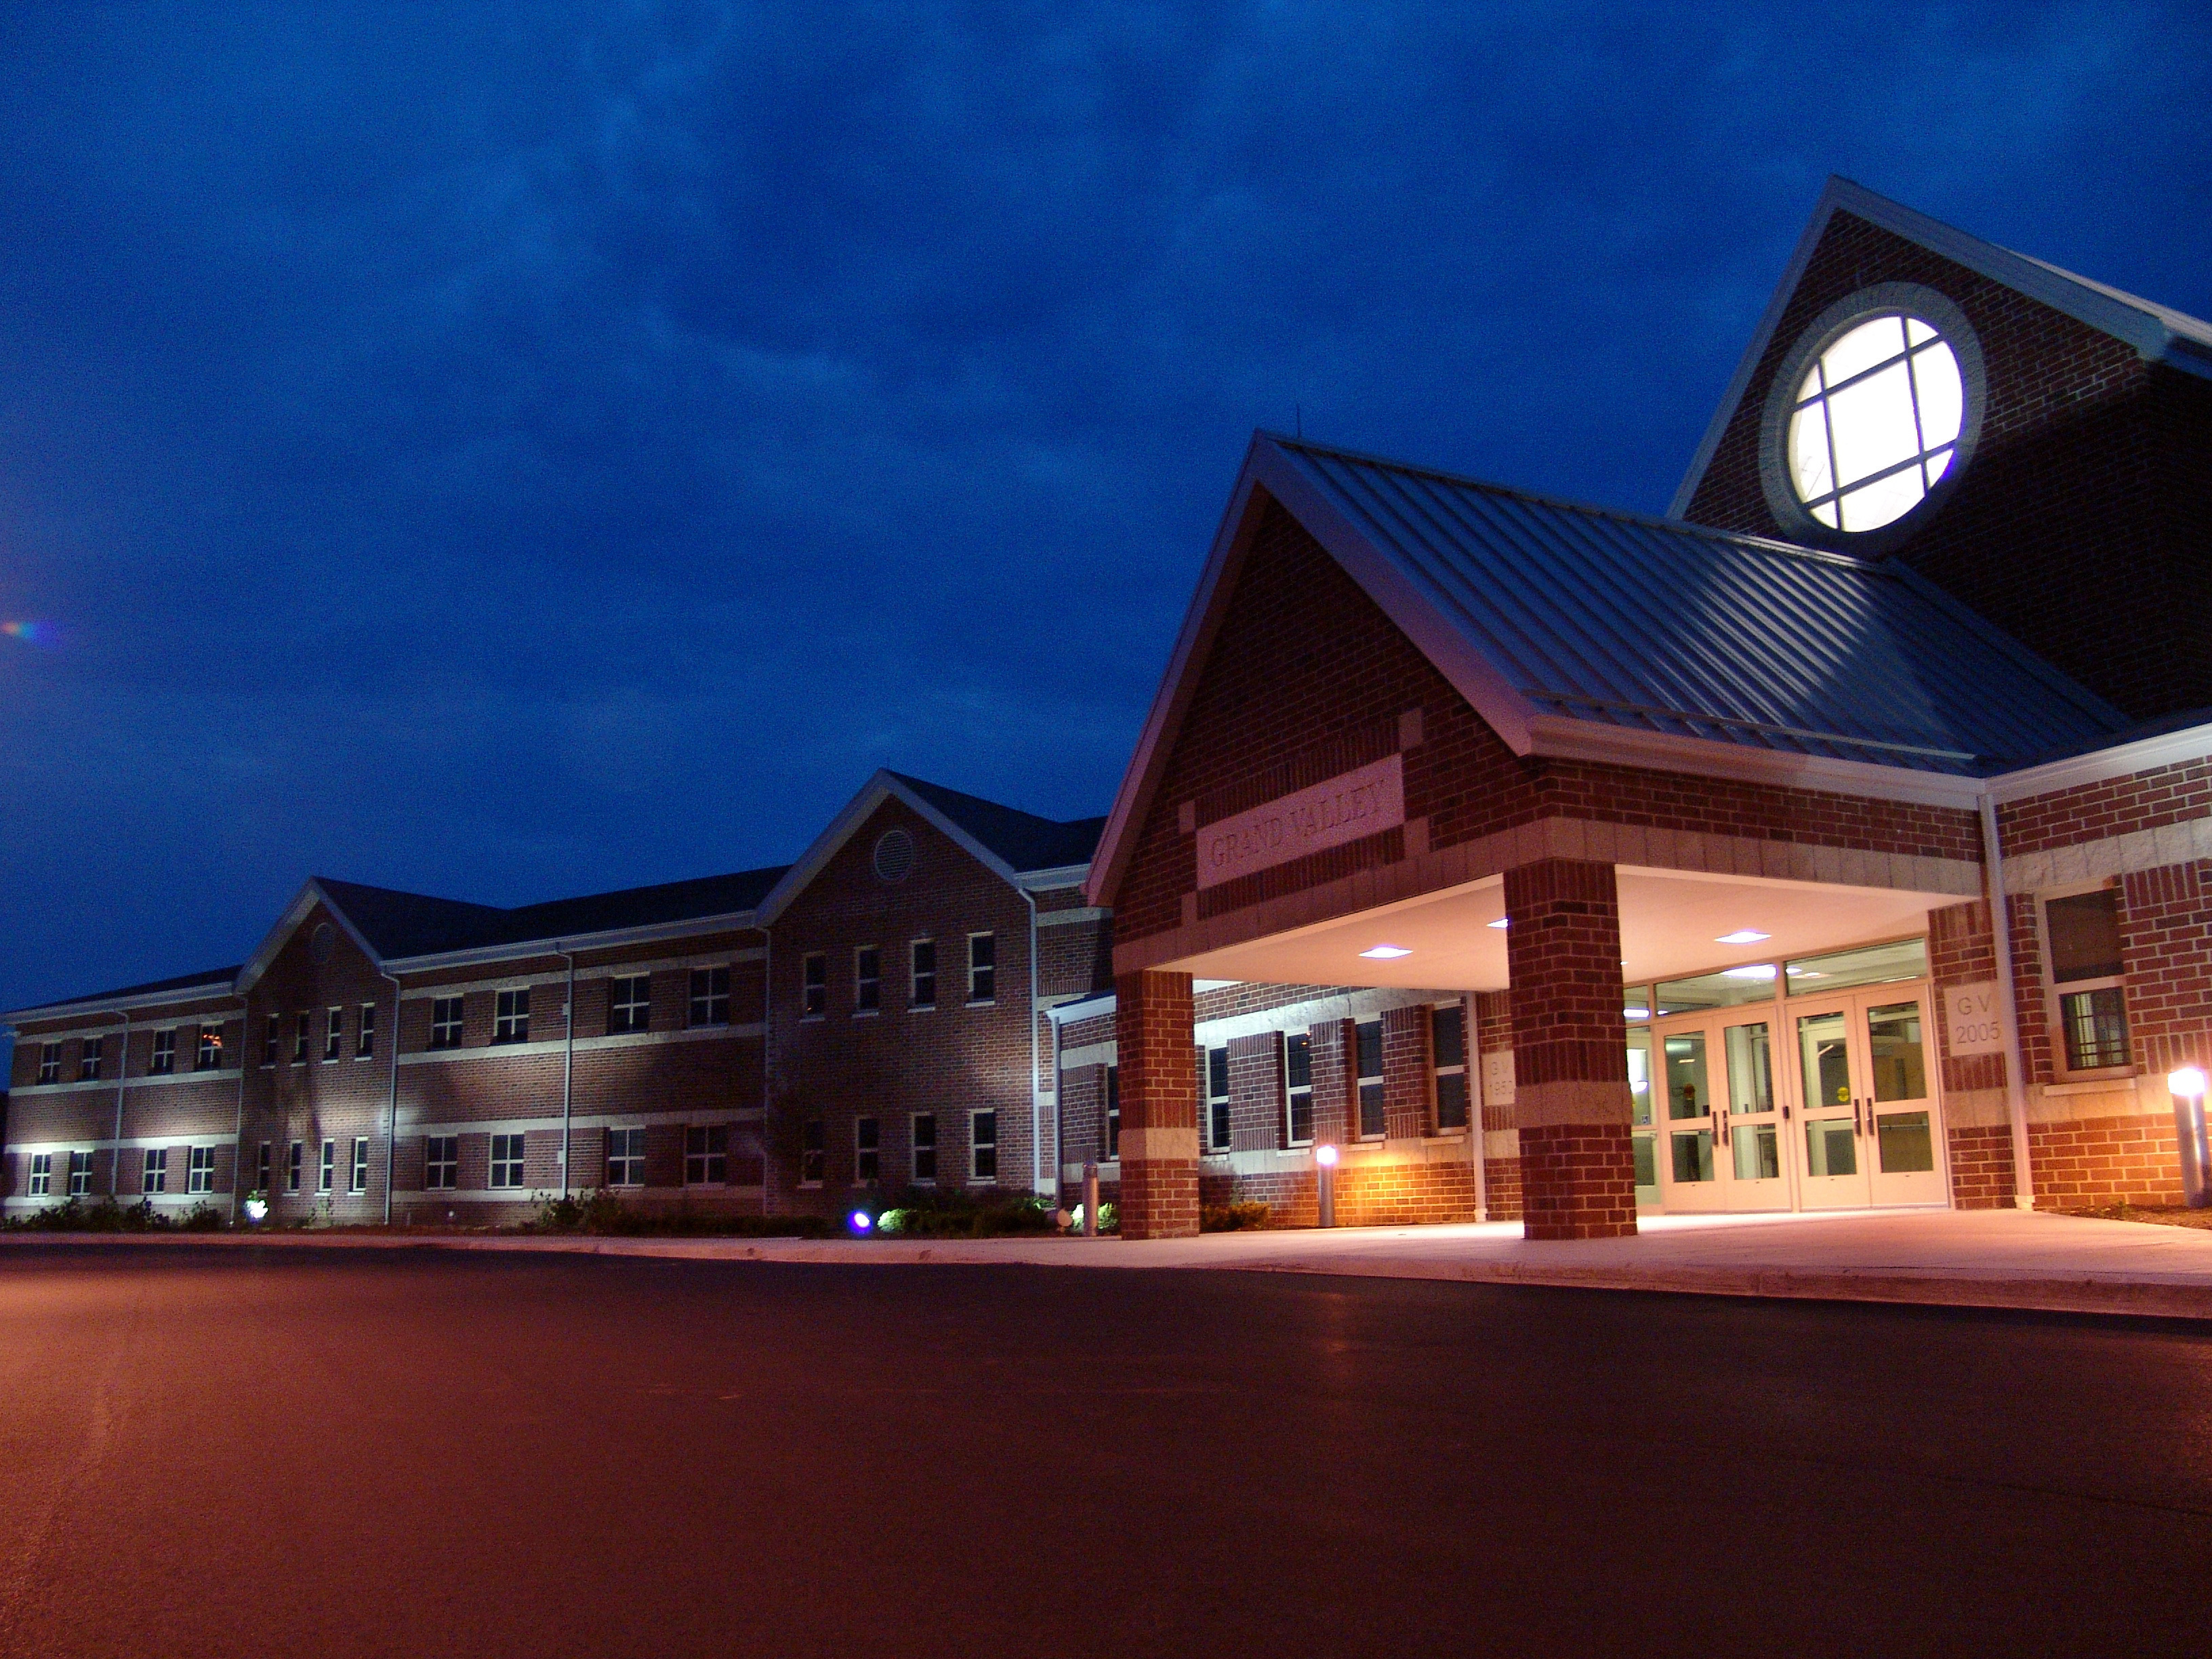 Grand Valley Complex front at night